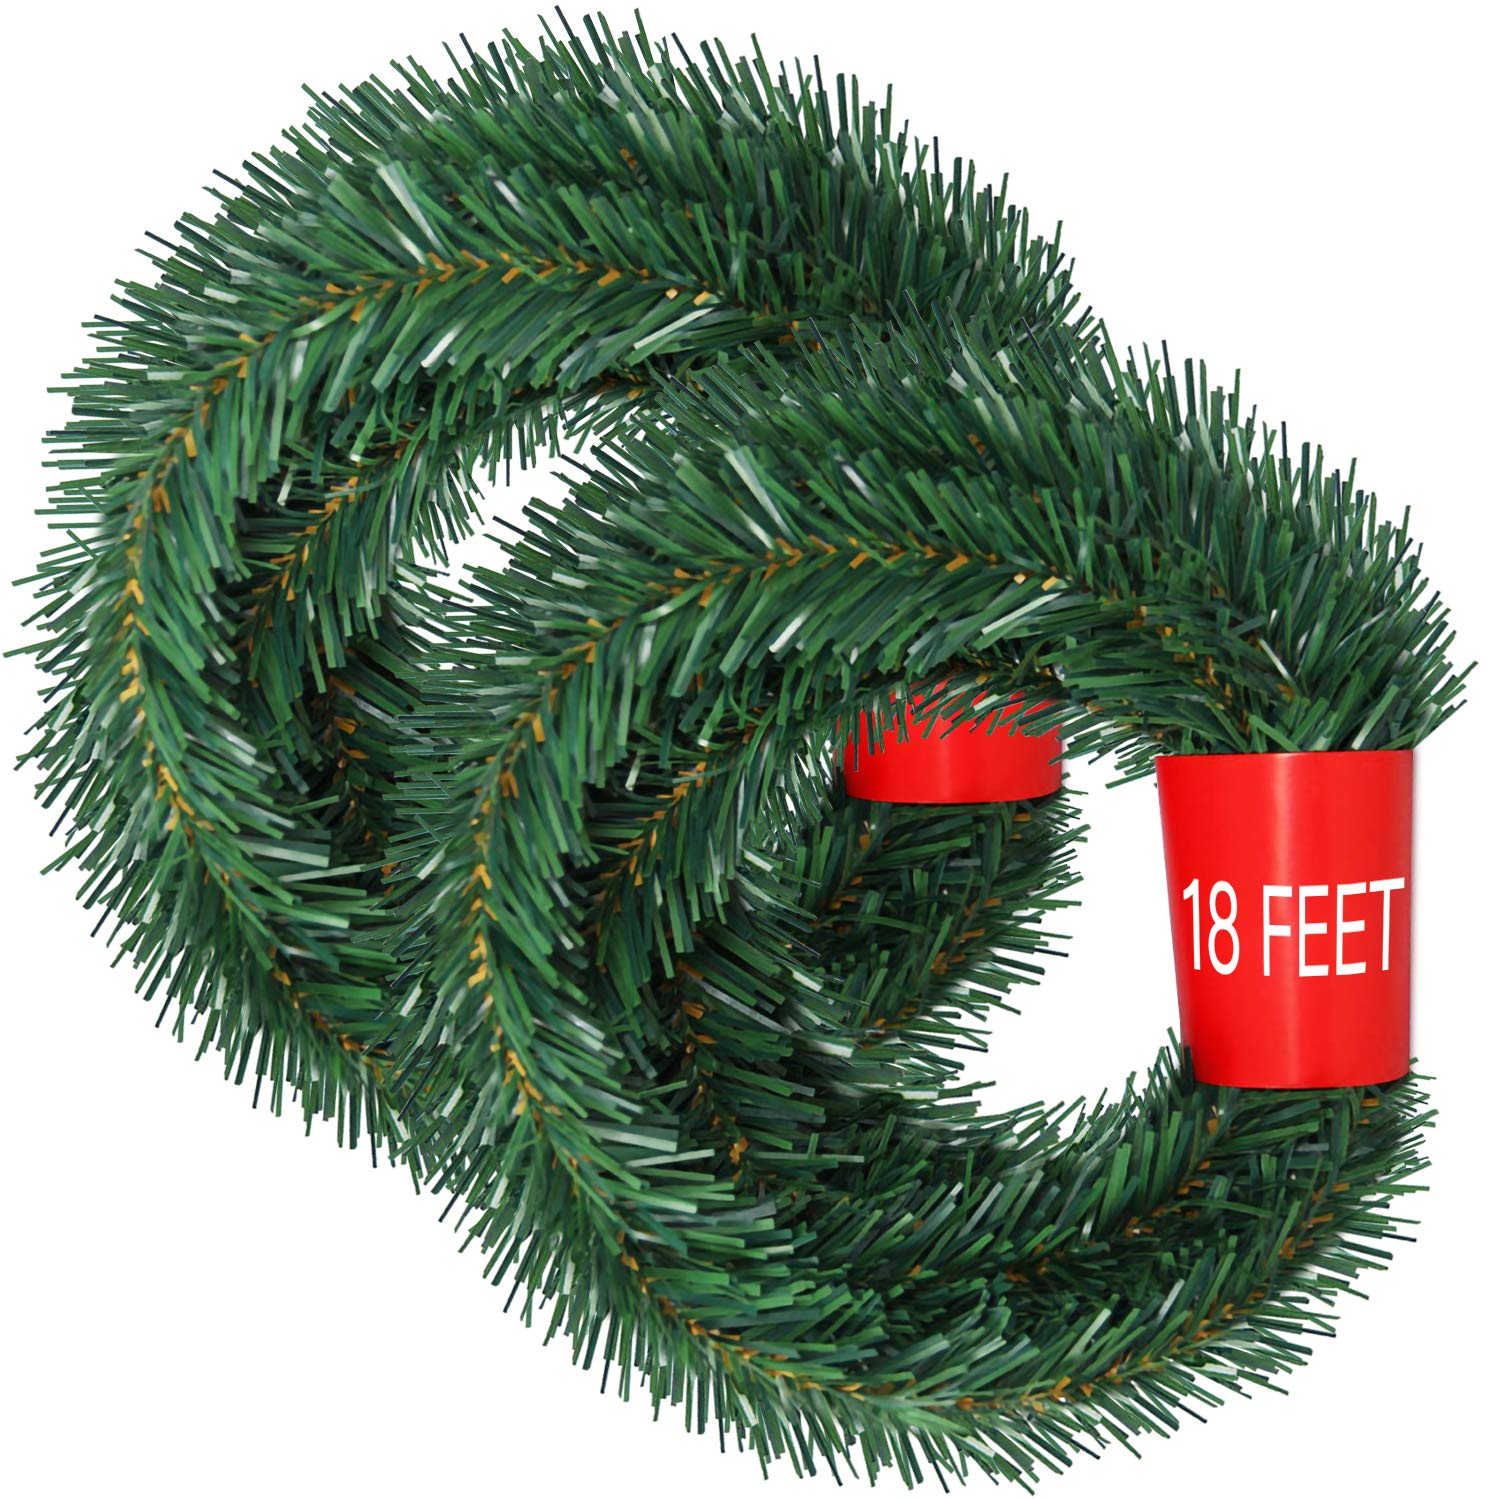 Christmas Pine Garland.Lvydec 36 Feet Christmas Garland 2 Strands Artificial Pine Garland Soft Greenery Garland For Holiday Wedding Party Decoration Outdoor Indoor Use